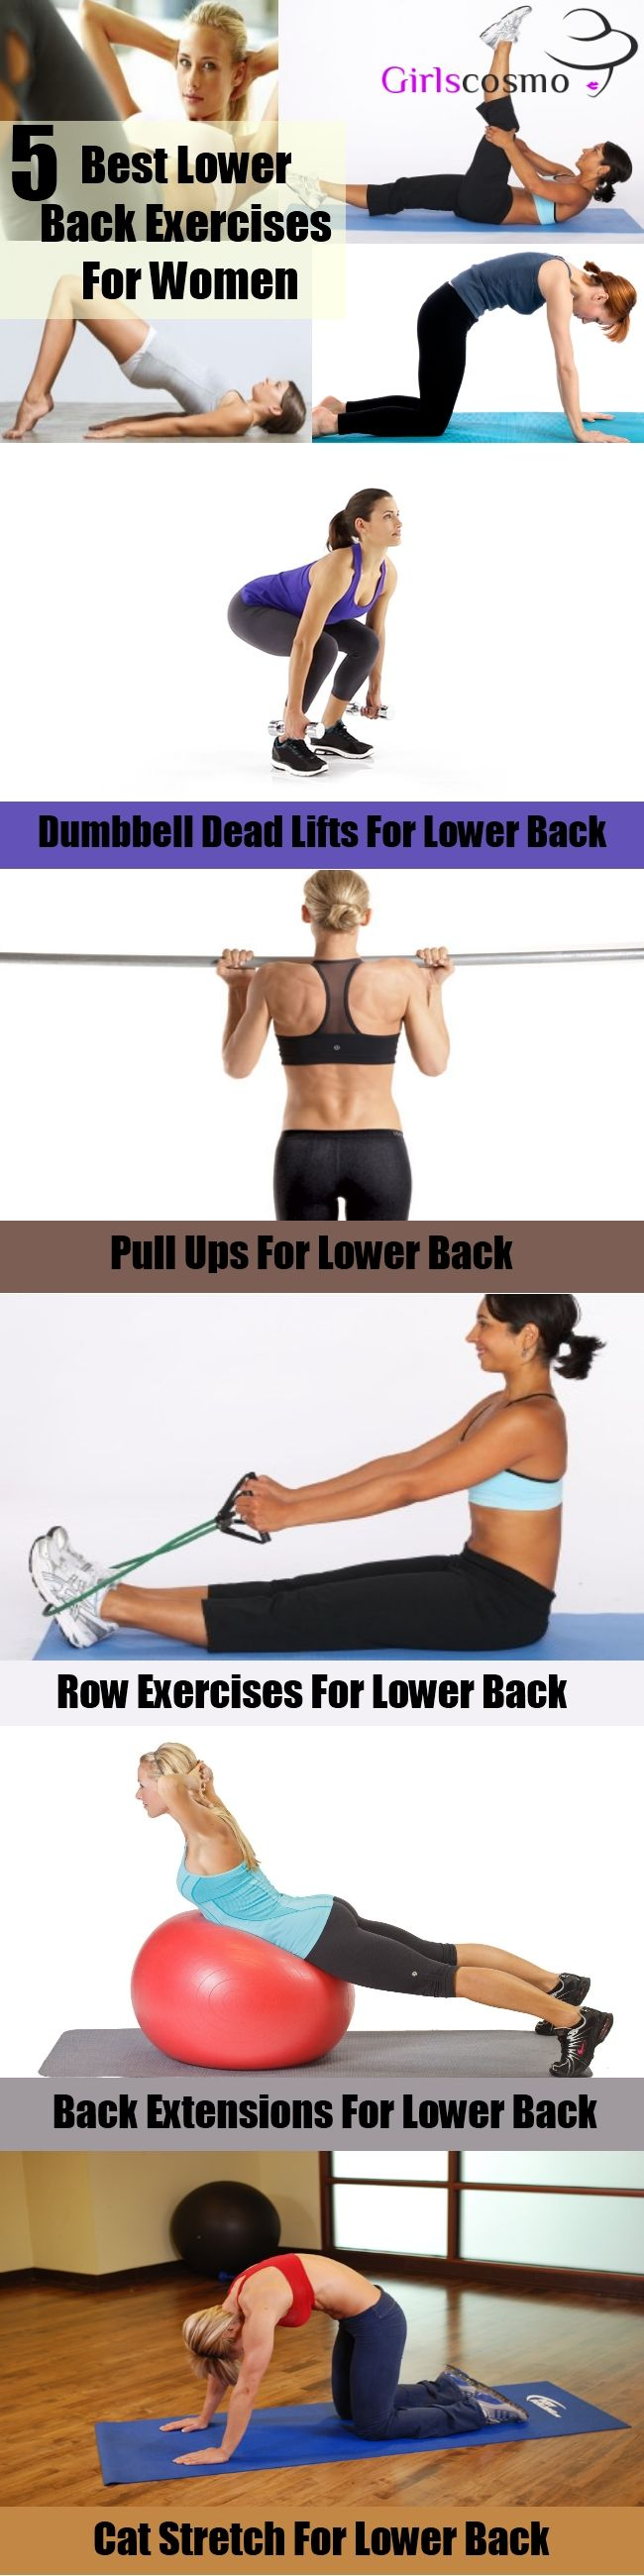 1000+ ideas about Lower Back Exercises on Pinterest ...